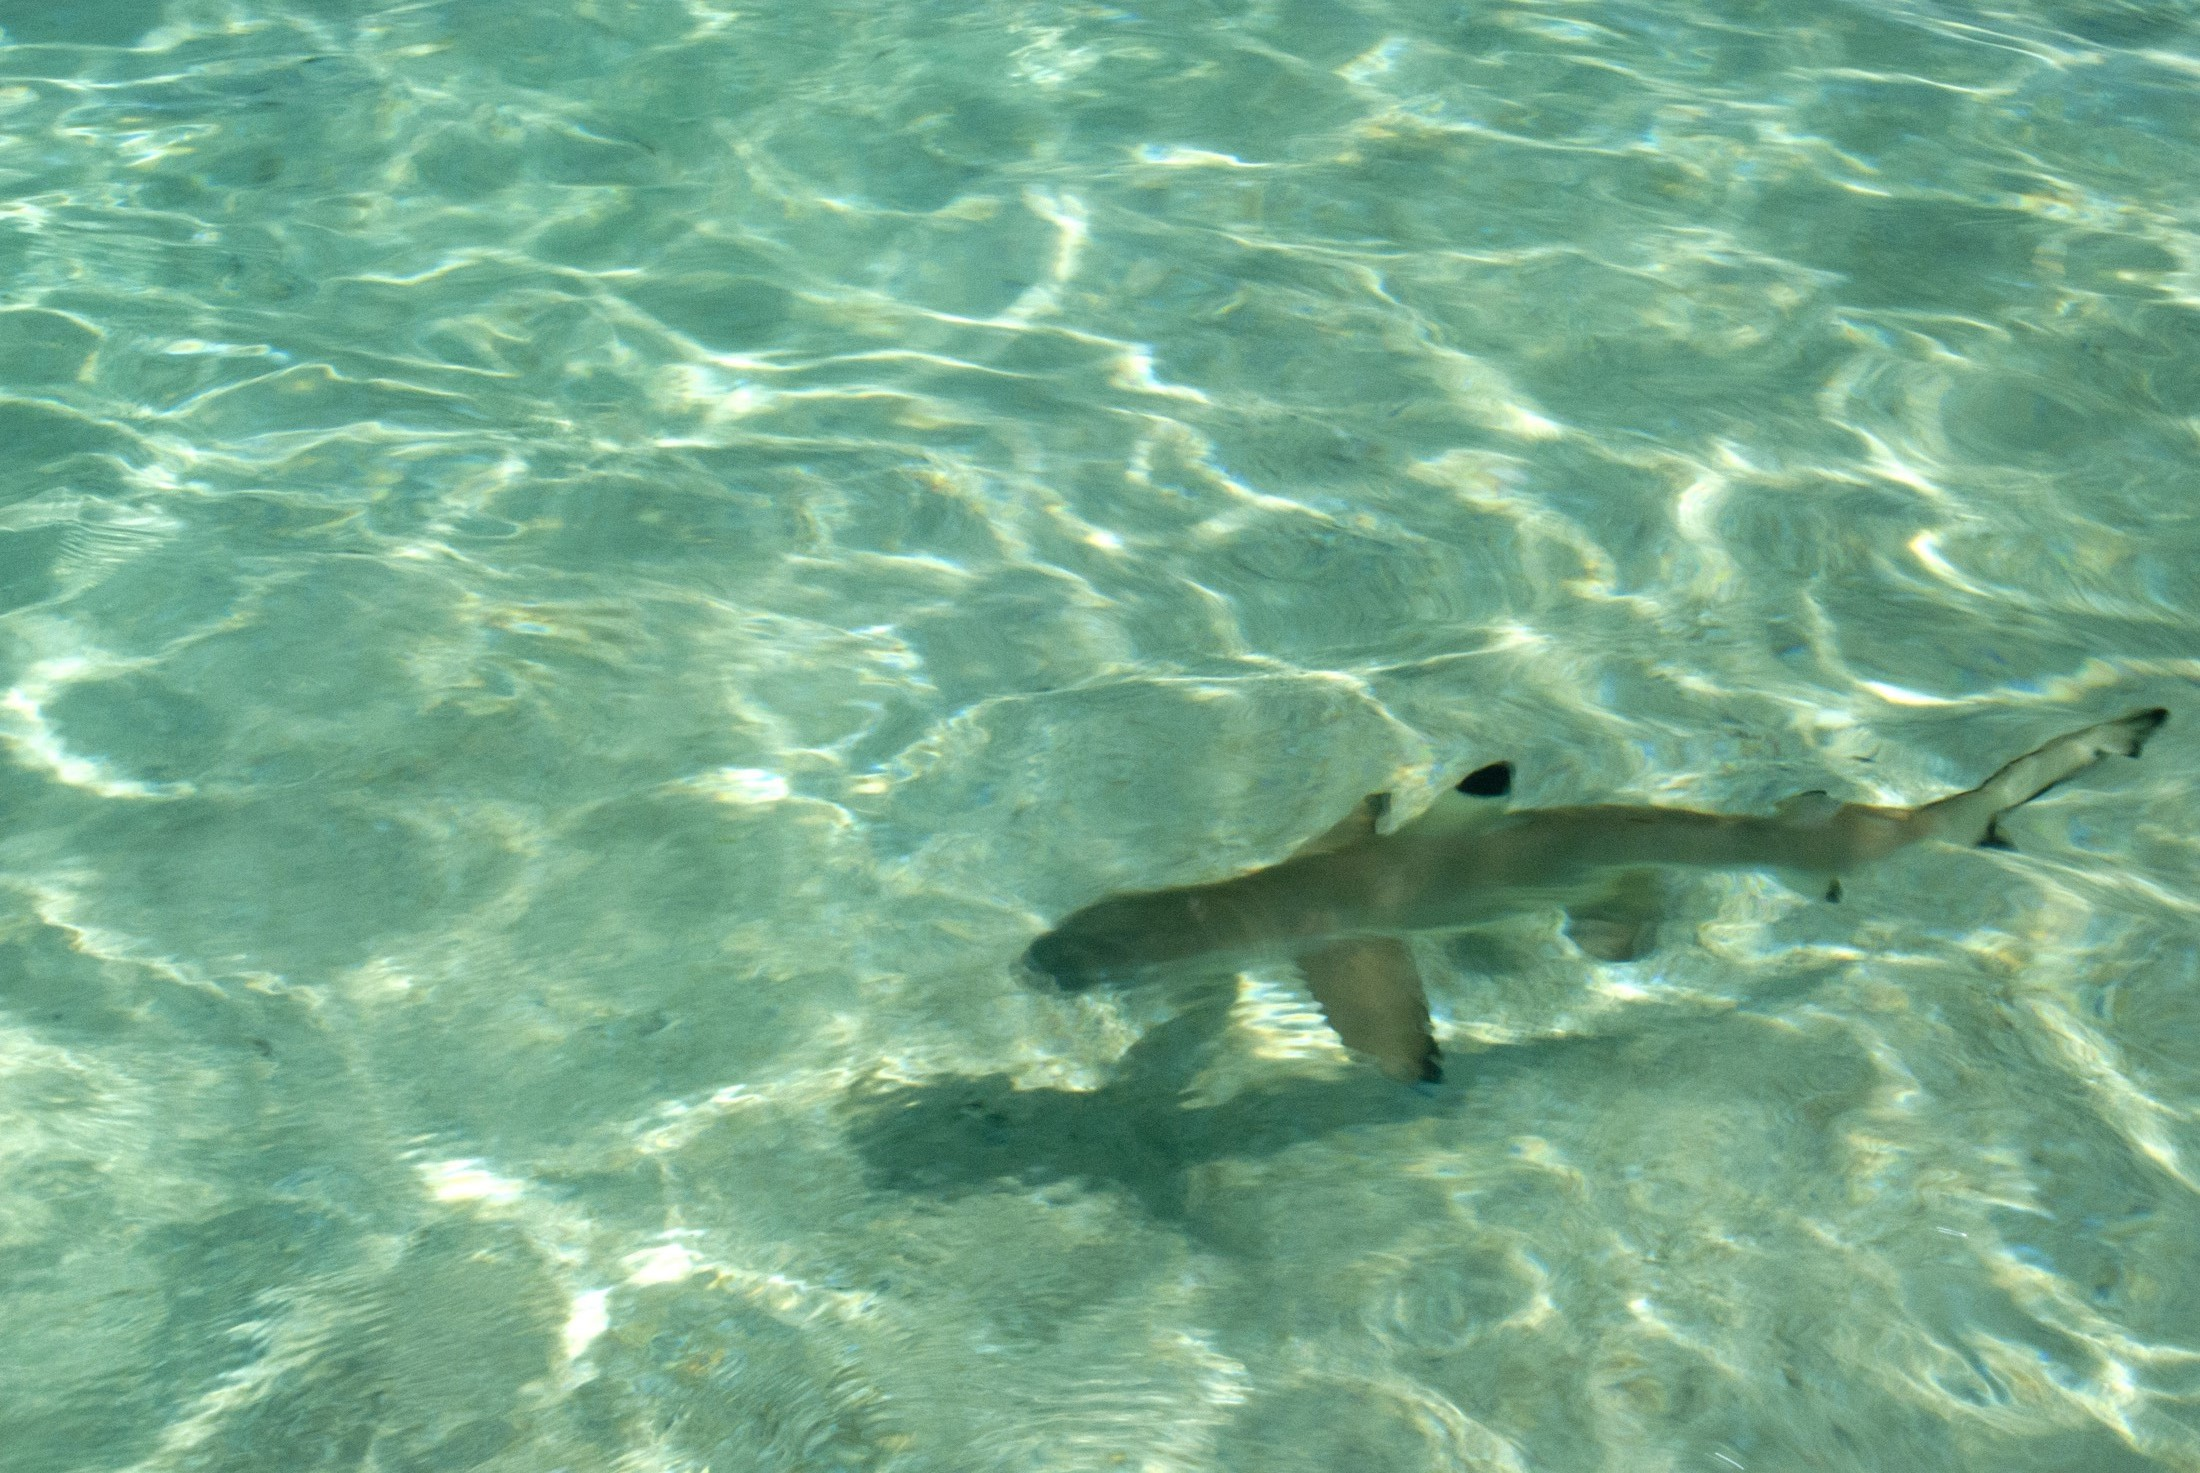 Blacktip reef shark swimming in shallow crystal clear water in Fiji with copyspace